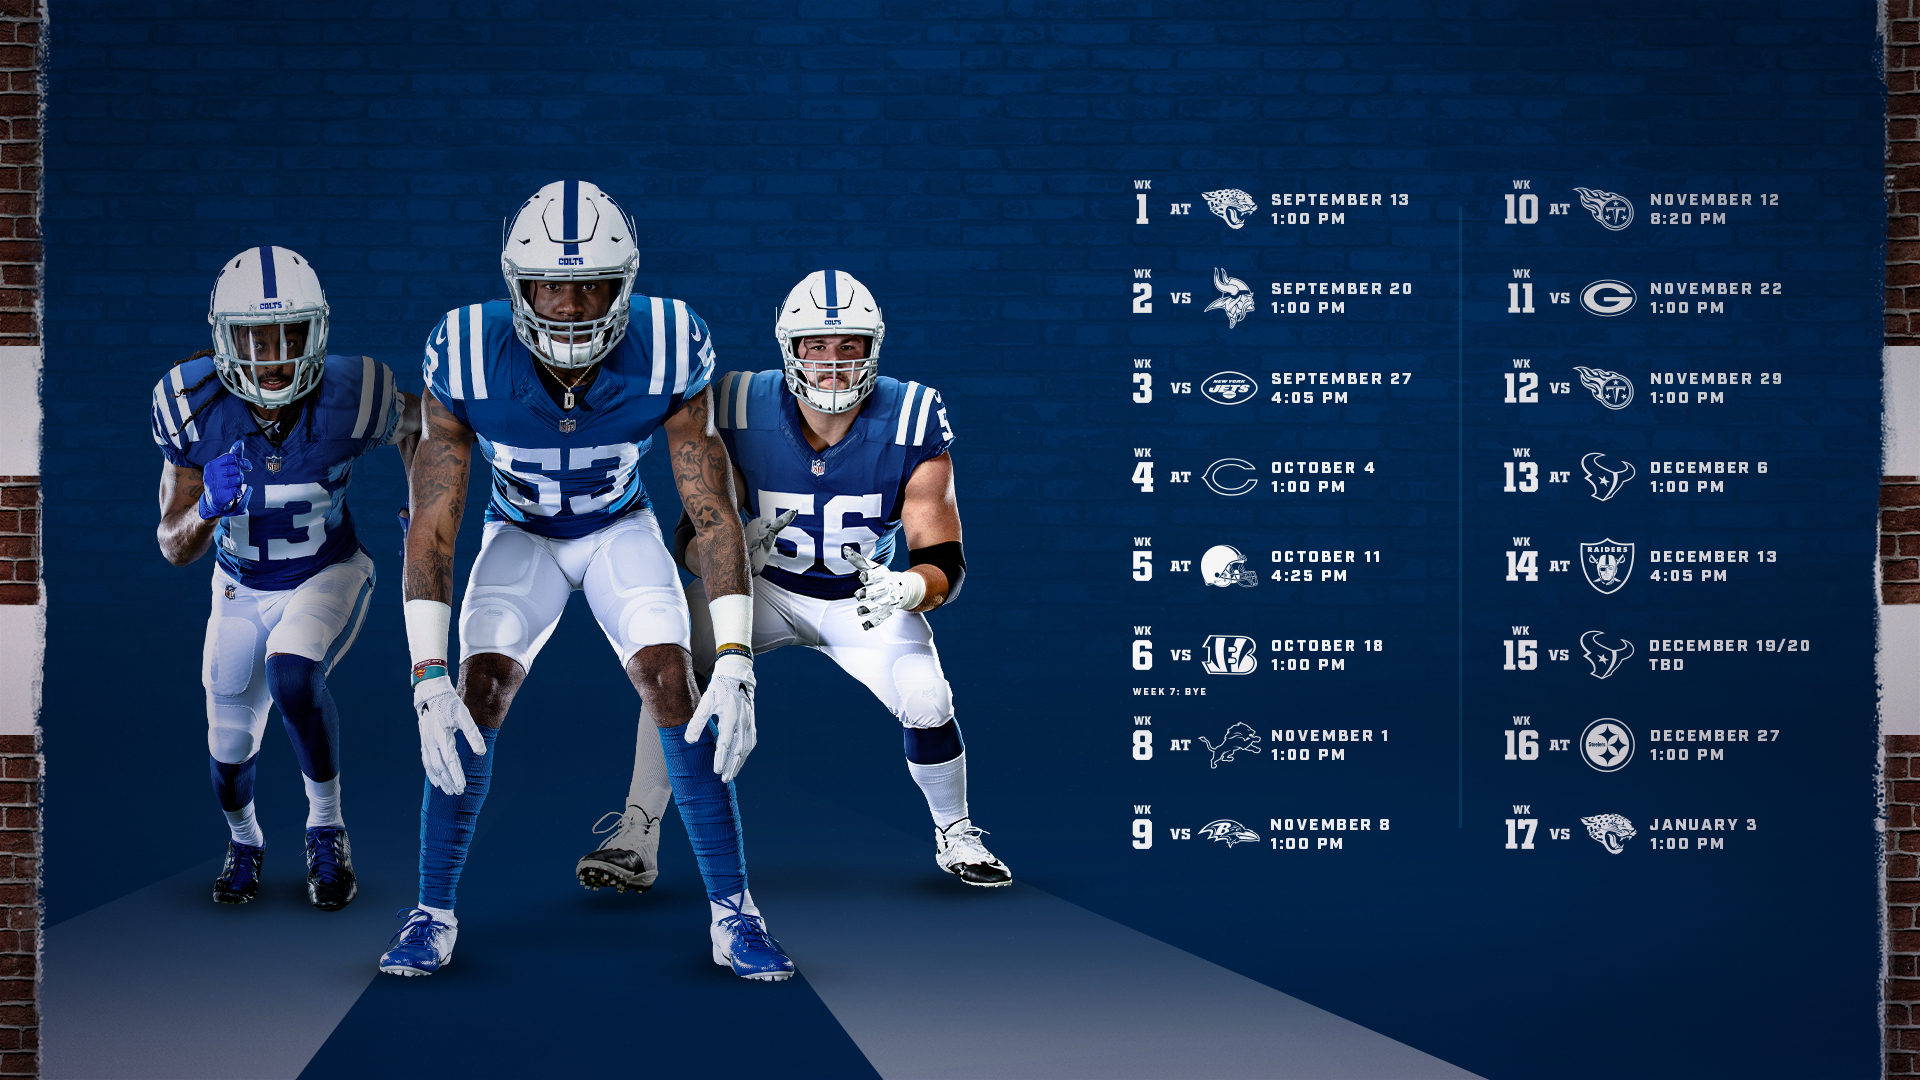 Colts Schedule | Indianapolis Colts - Colts inside Full Nfl Schedule 2021 Printable